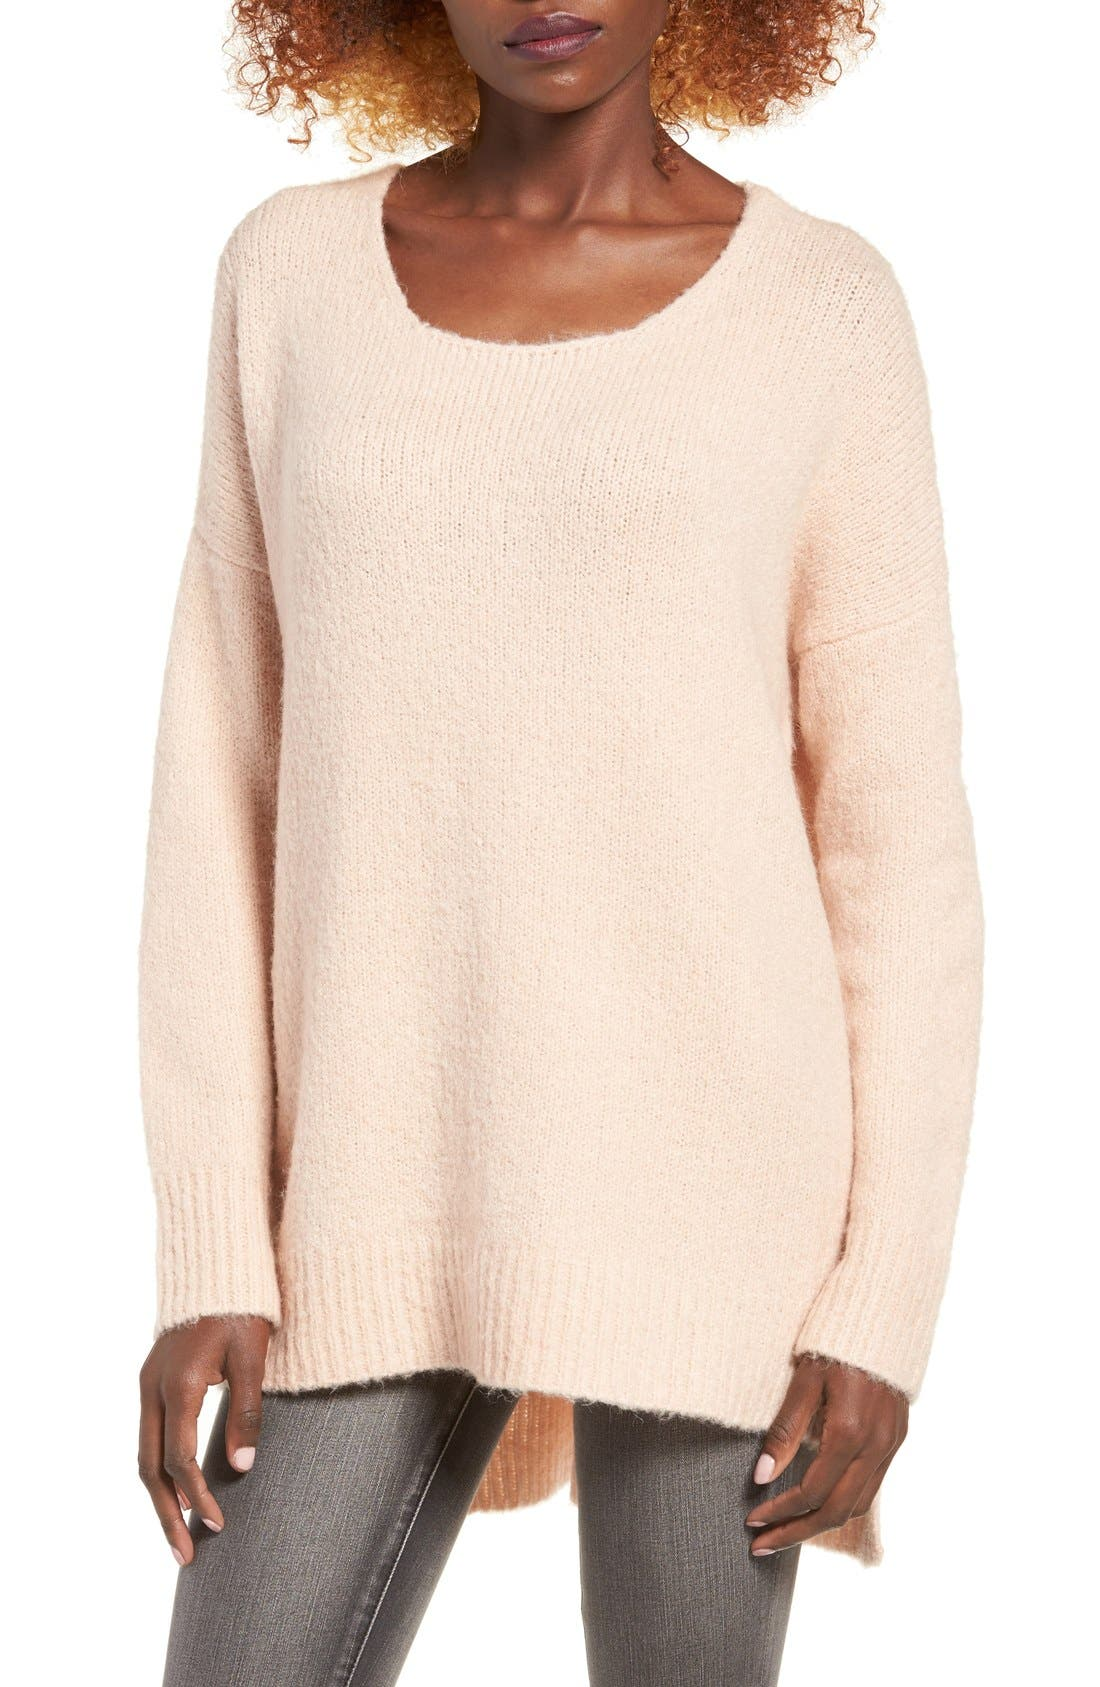 Alternate Image 1 Selected - Dreamers by Debut Cross Back Sweater